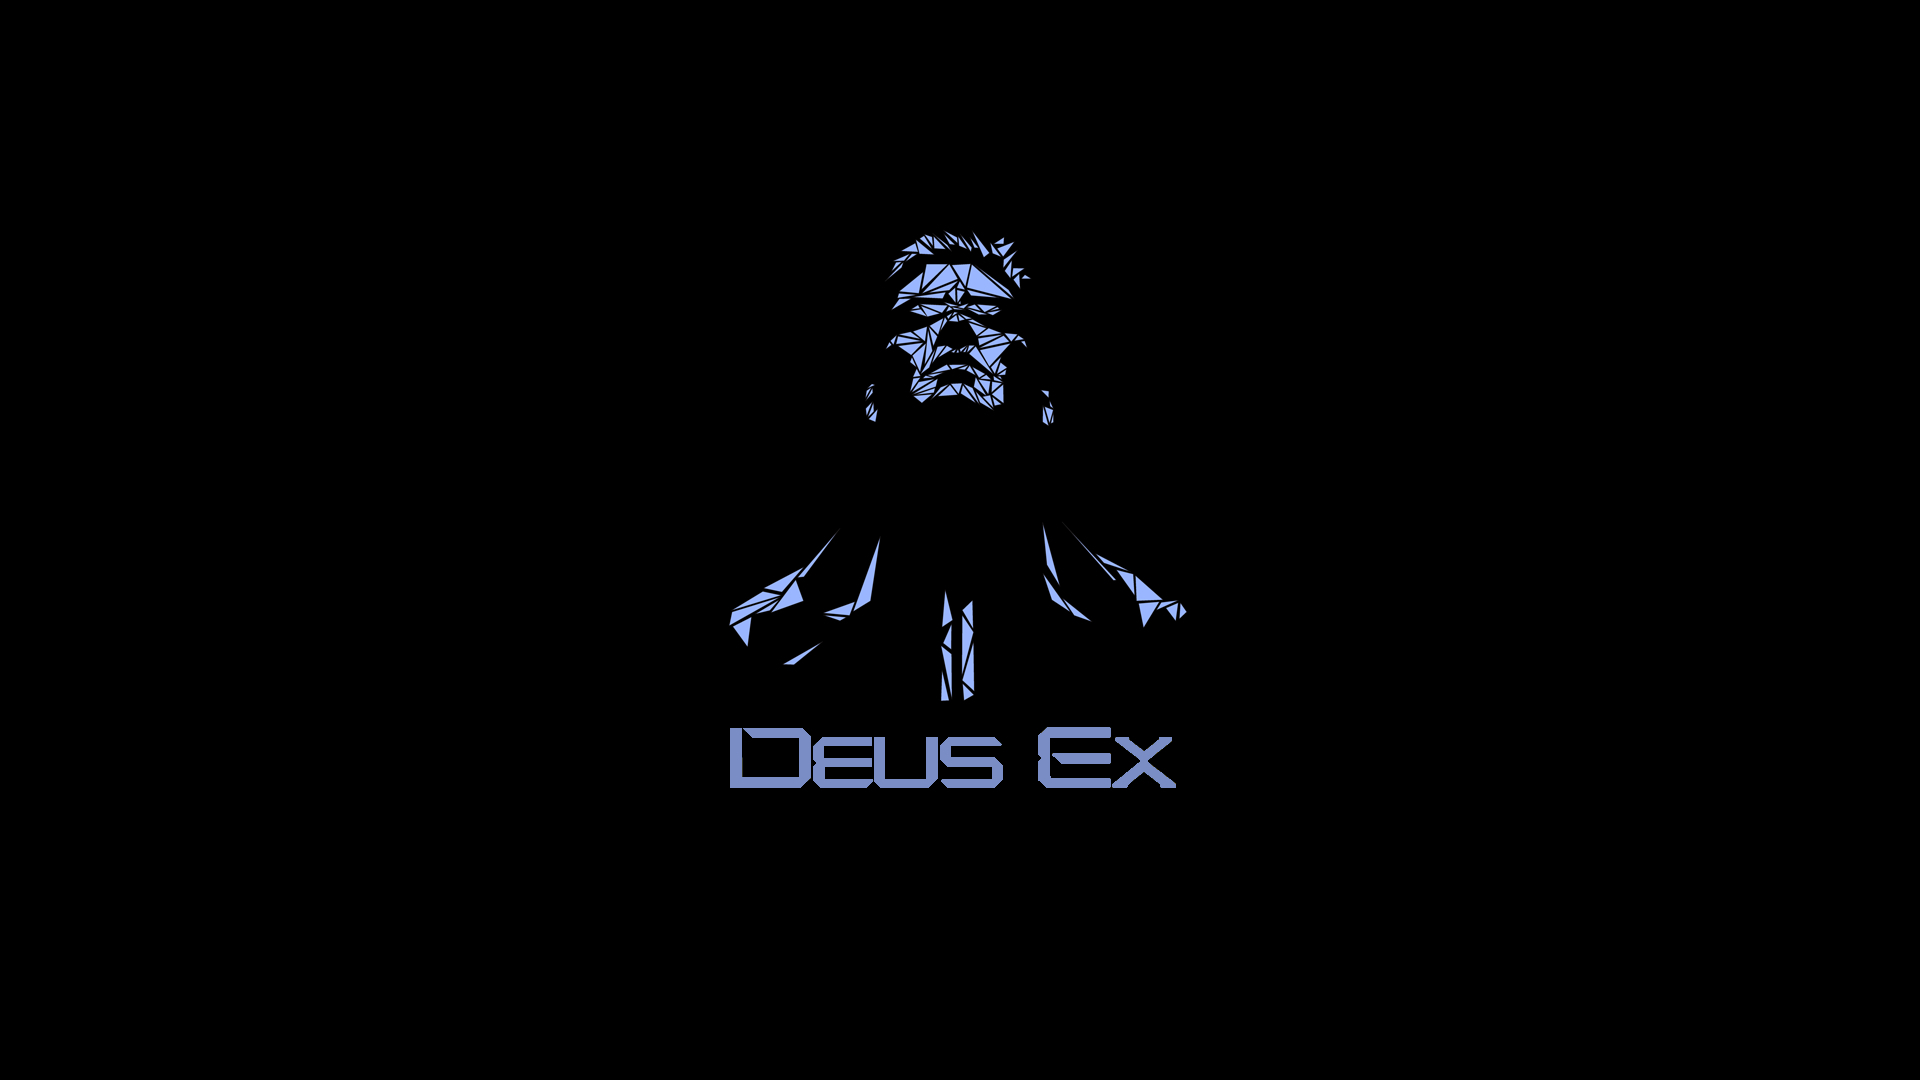 deus EX jc denton HD Wallpaper